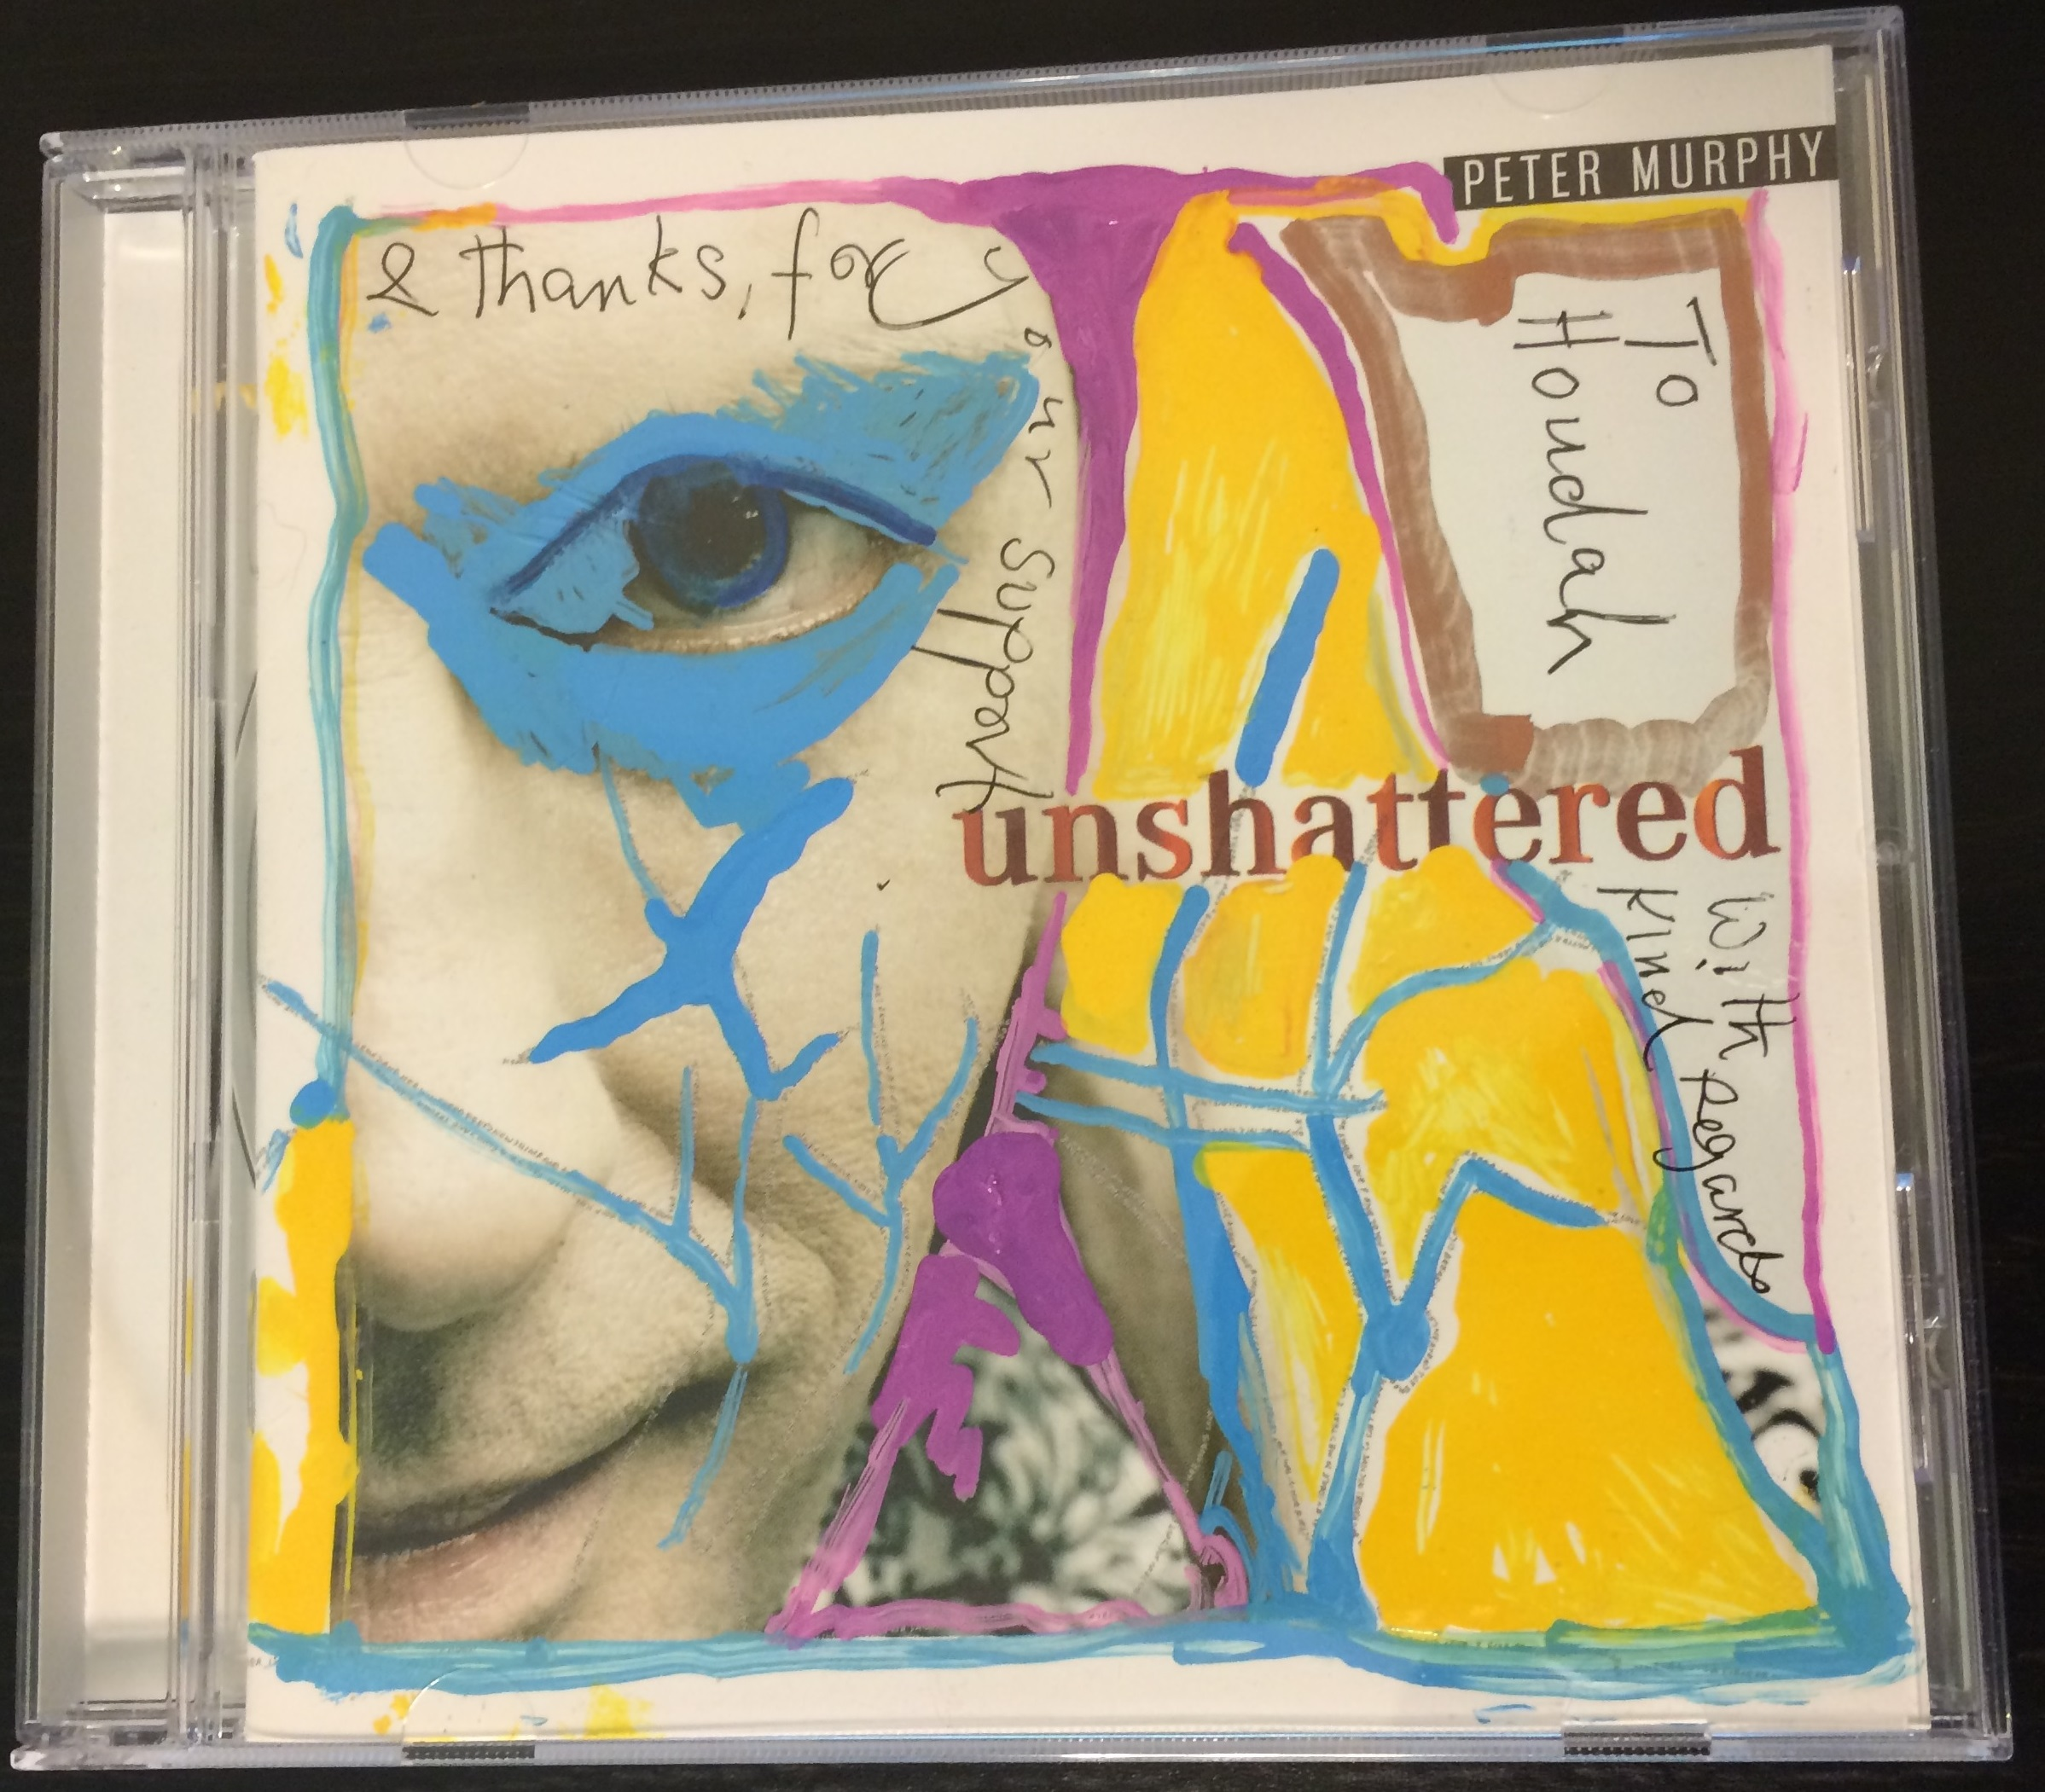 Unshattered Art CD